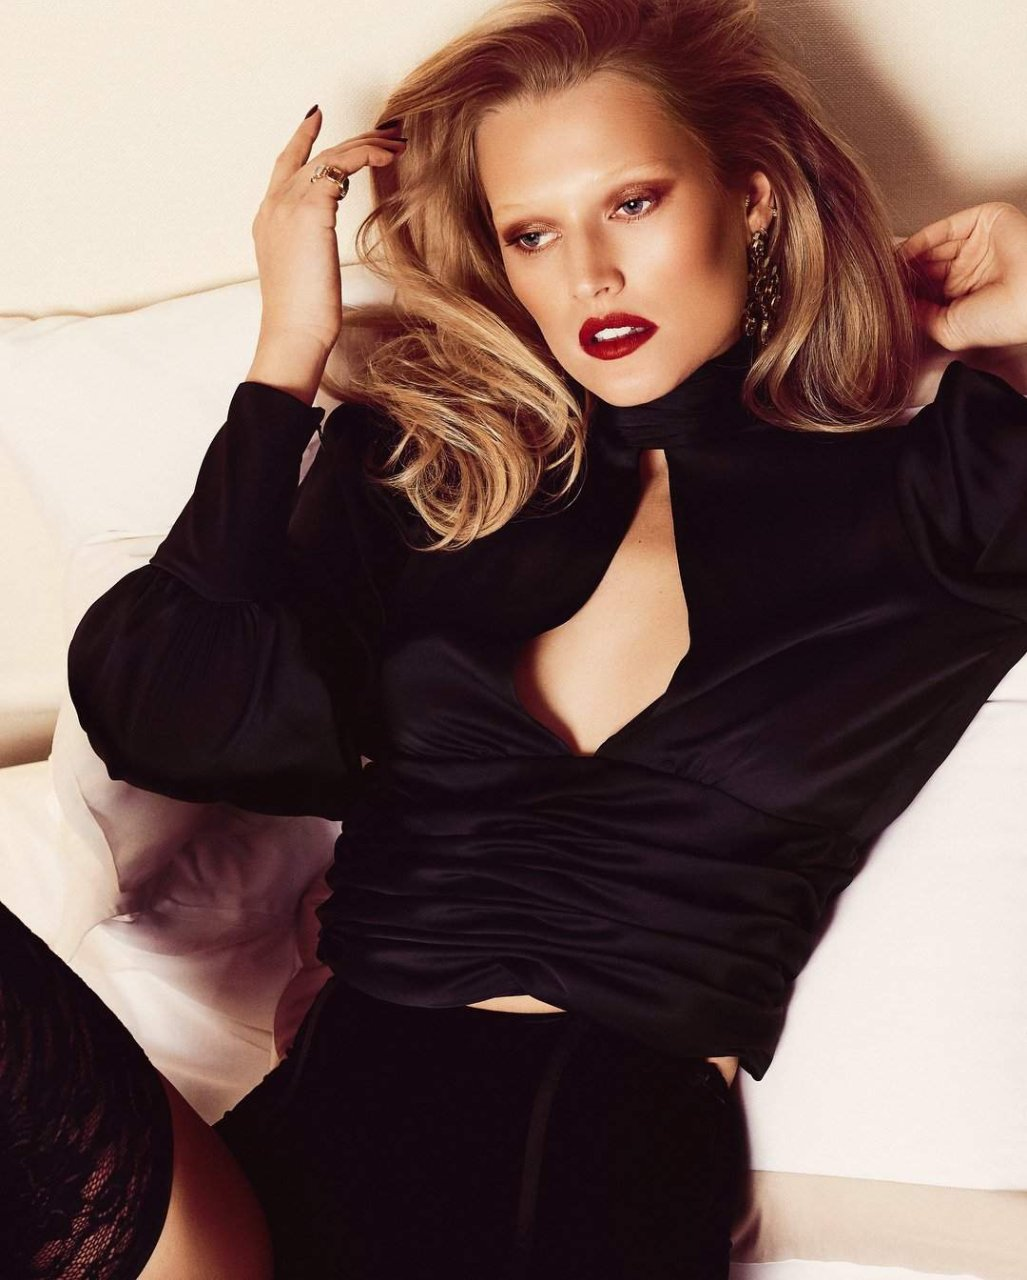 Toni-Garrn-See-Through-Sexy-TheFappeningBlog.com-4.jpg